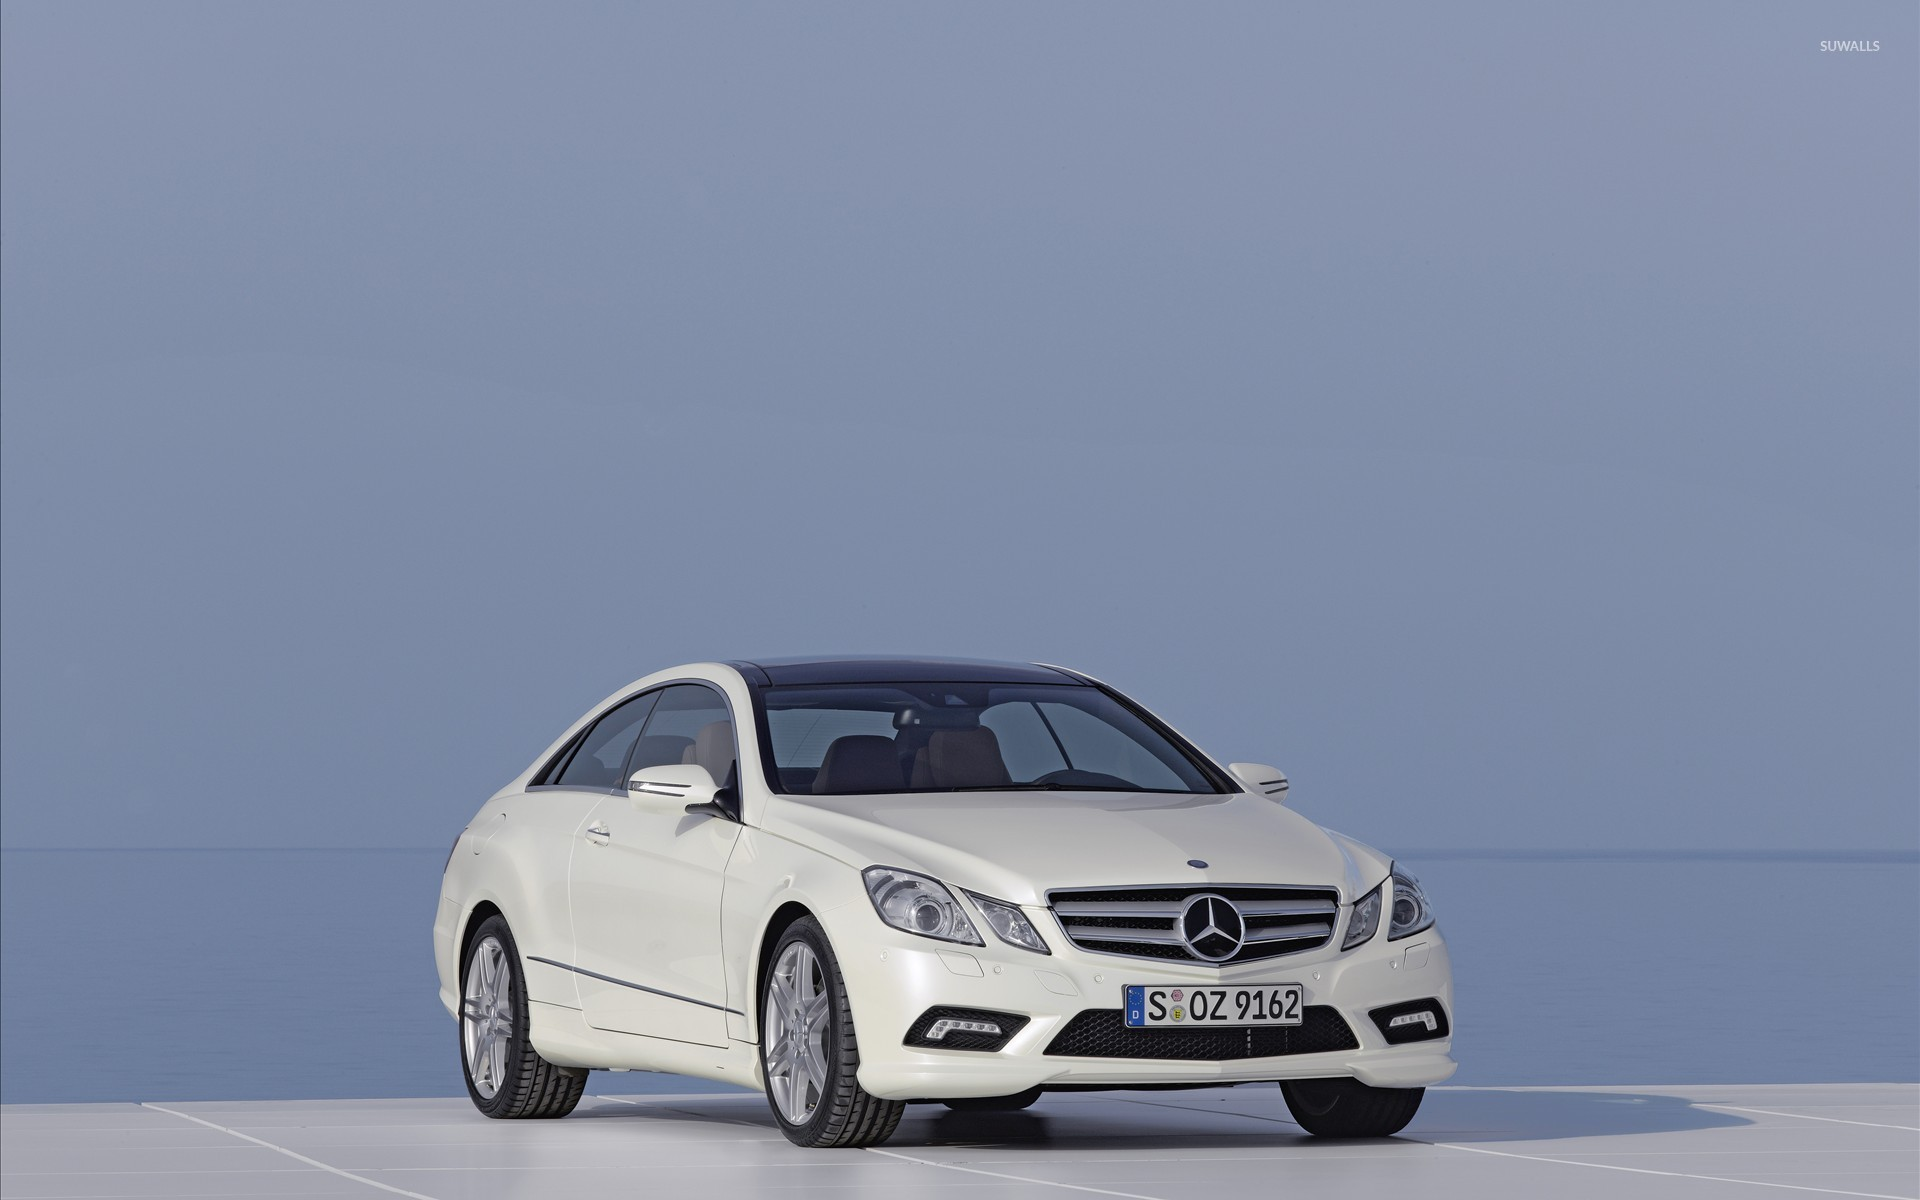 2010 mercedes benz e class coupe wallpaper car. Black Bedroom Furniture Sets. Home Design Ideas